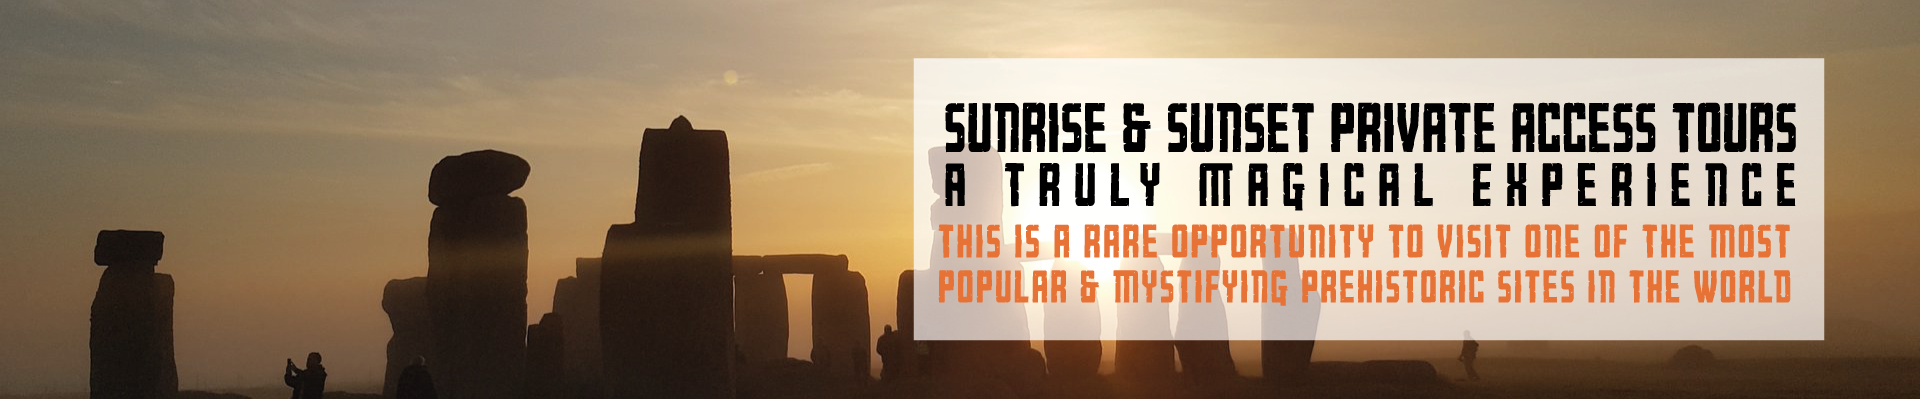 Stonehenge Sunrise and Sunset Private Access Inner Circle Tours